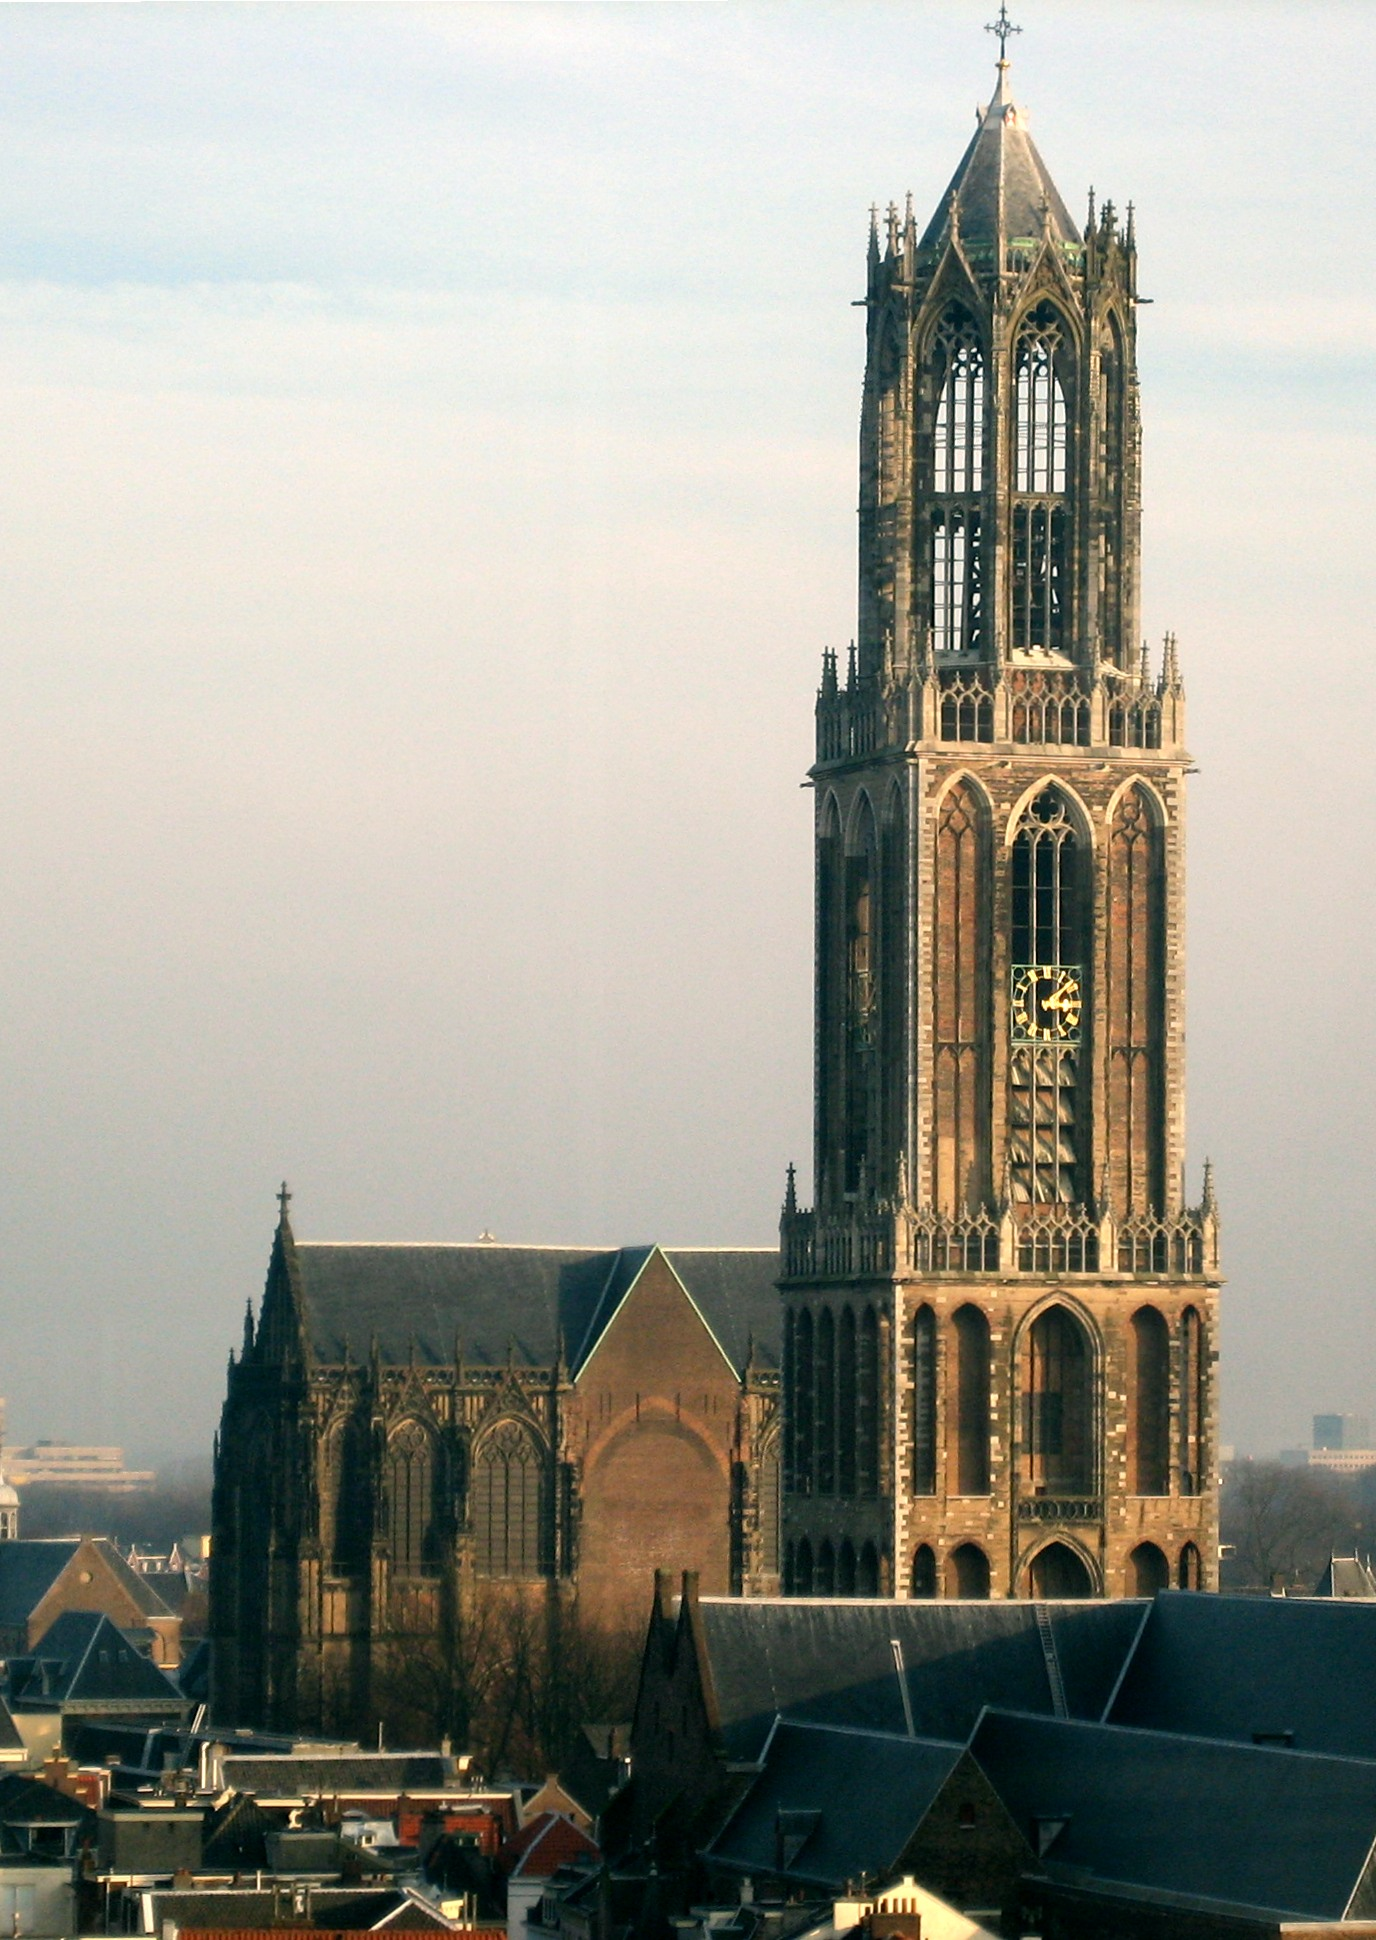 https://upload.wikimedia.org/wikipedia/commons/b/b2/Domtower_Utrecht.jpg